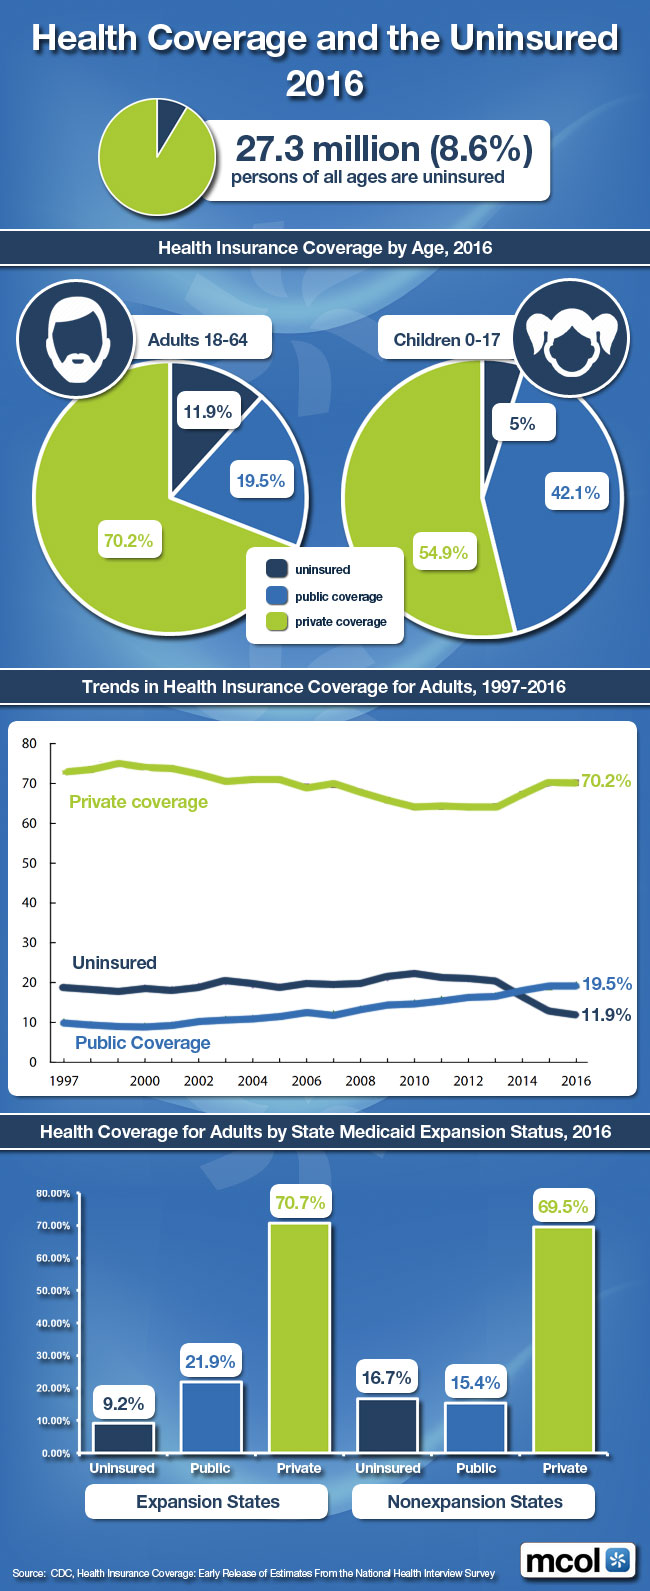 This Infographic is available at http://www.mcareol.com/images/infographic0916.jpg